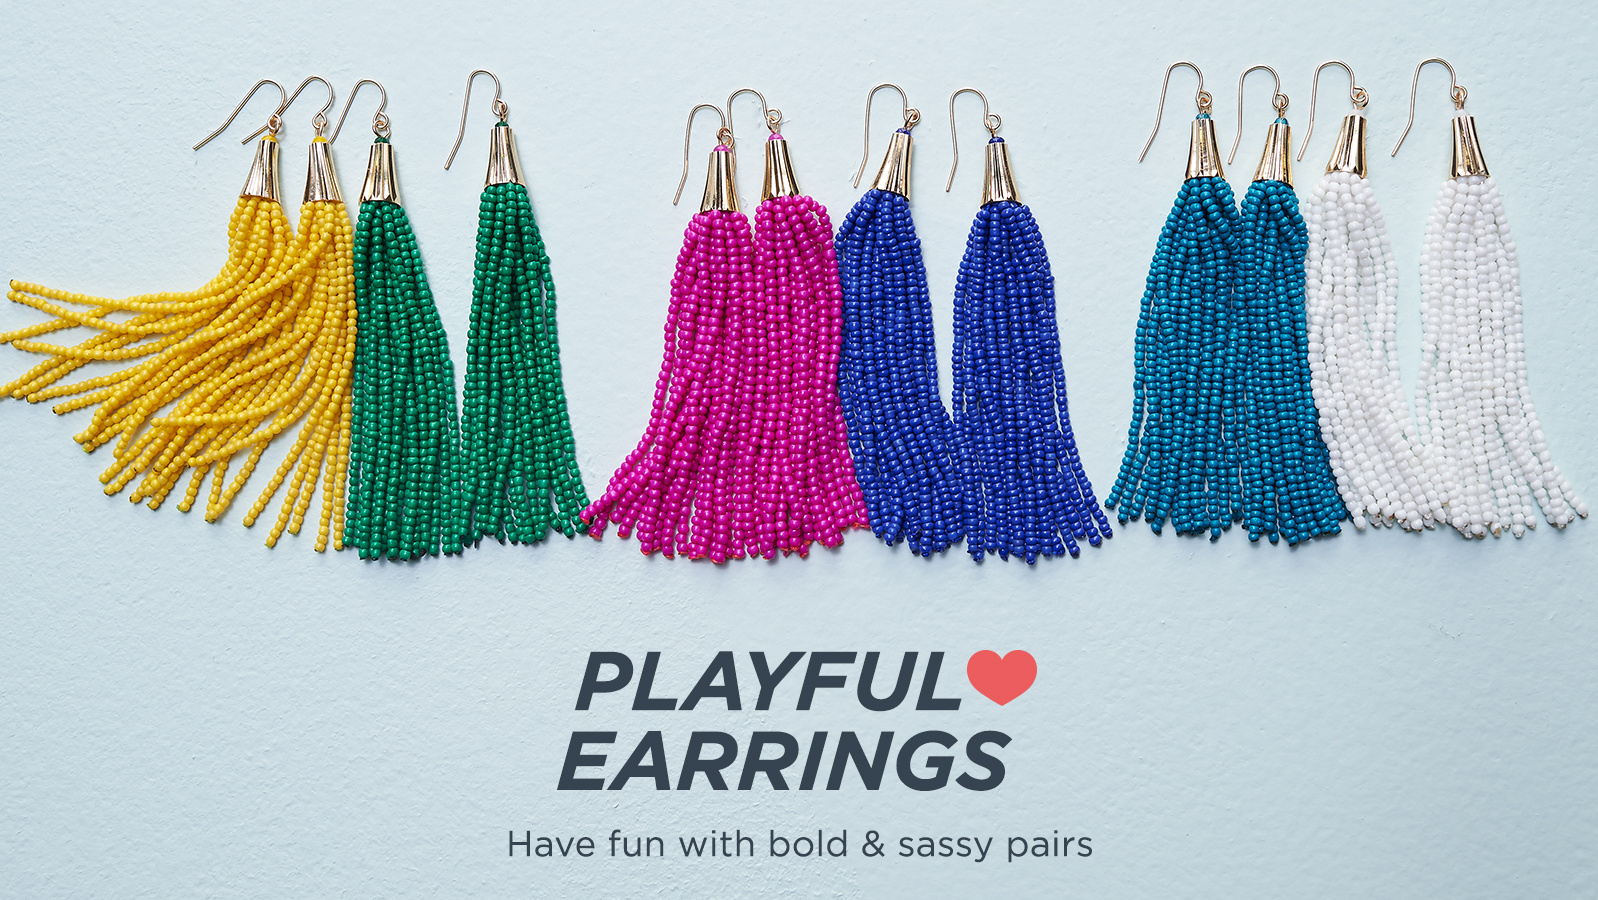 Playful Earrings  — Have fun with bold & sassy pairs